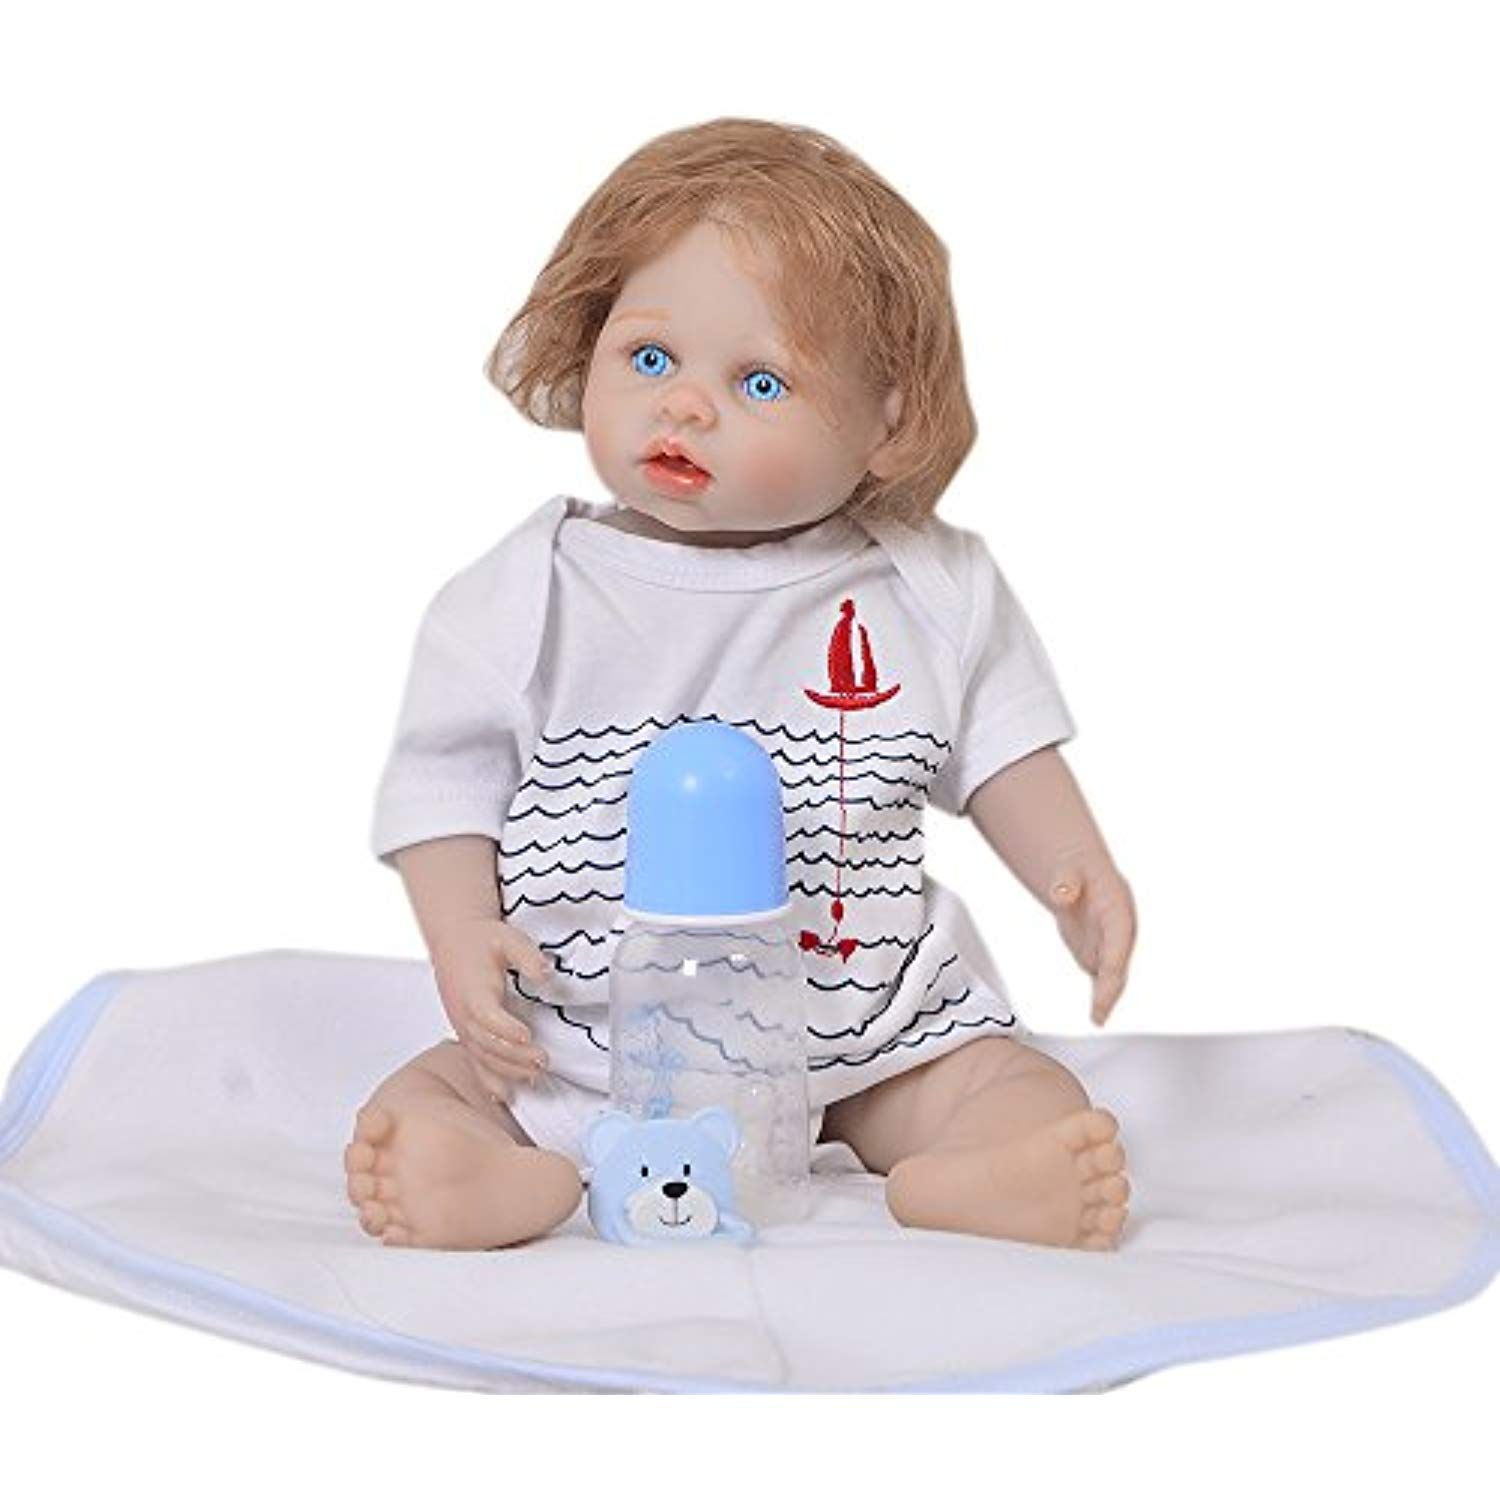 Npk Doll De Silicone Reborn Toddle 20 Inch Real Handmade Realistic Baby Doll Boys Real Touch Bebe Reborn Babies Playmate Toys Dolls & Stuffed Toys